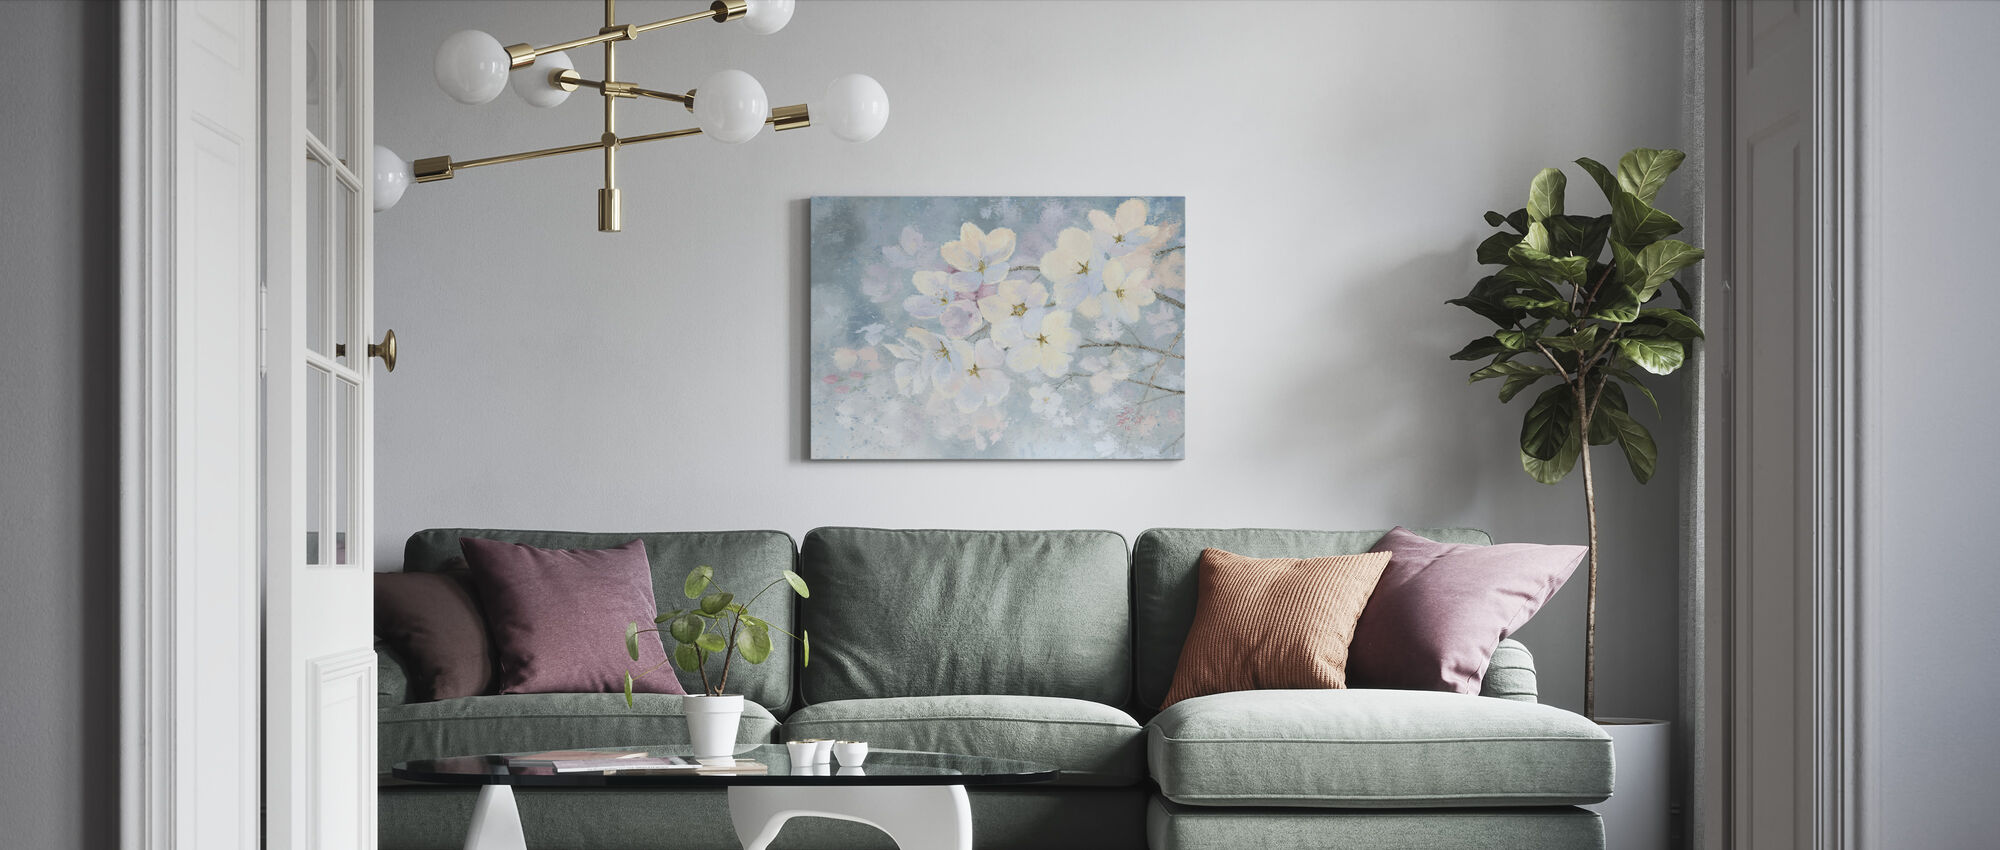 Splendid Bloom - Canvas print - Living Room